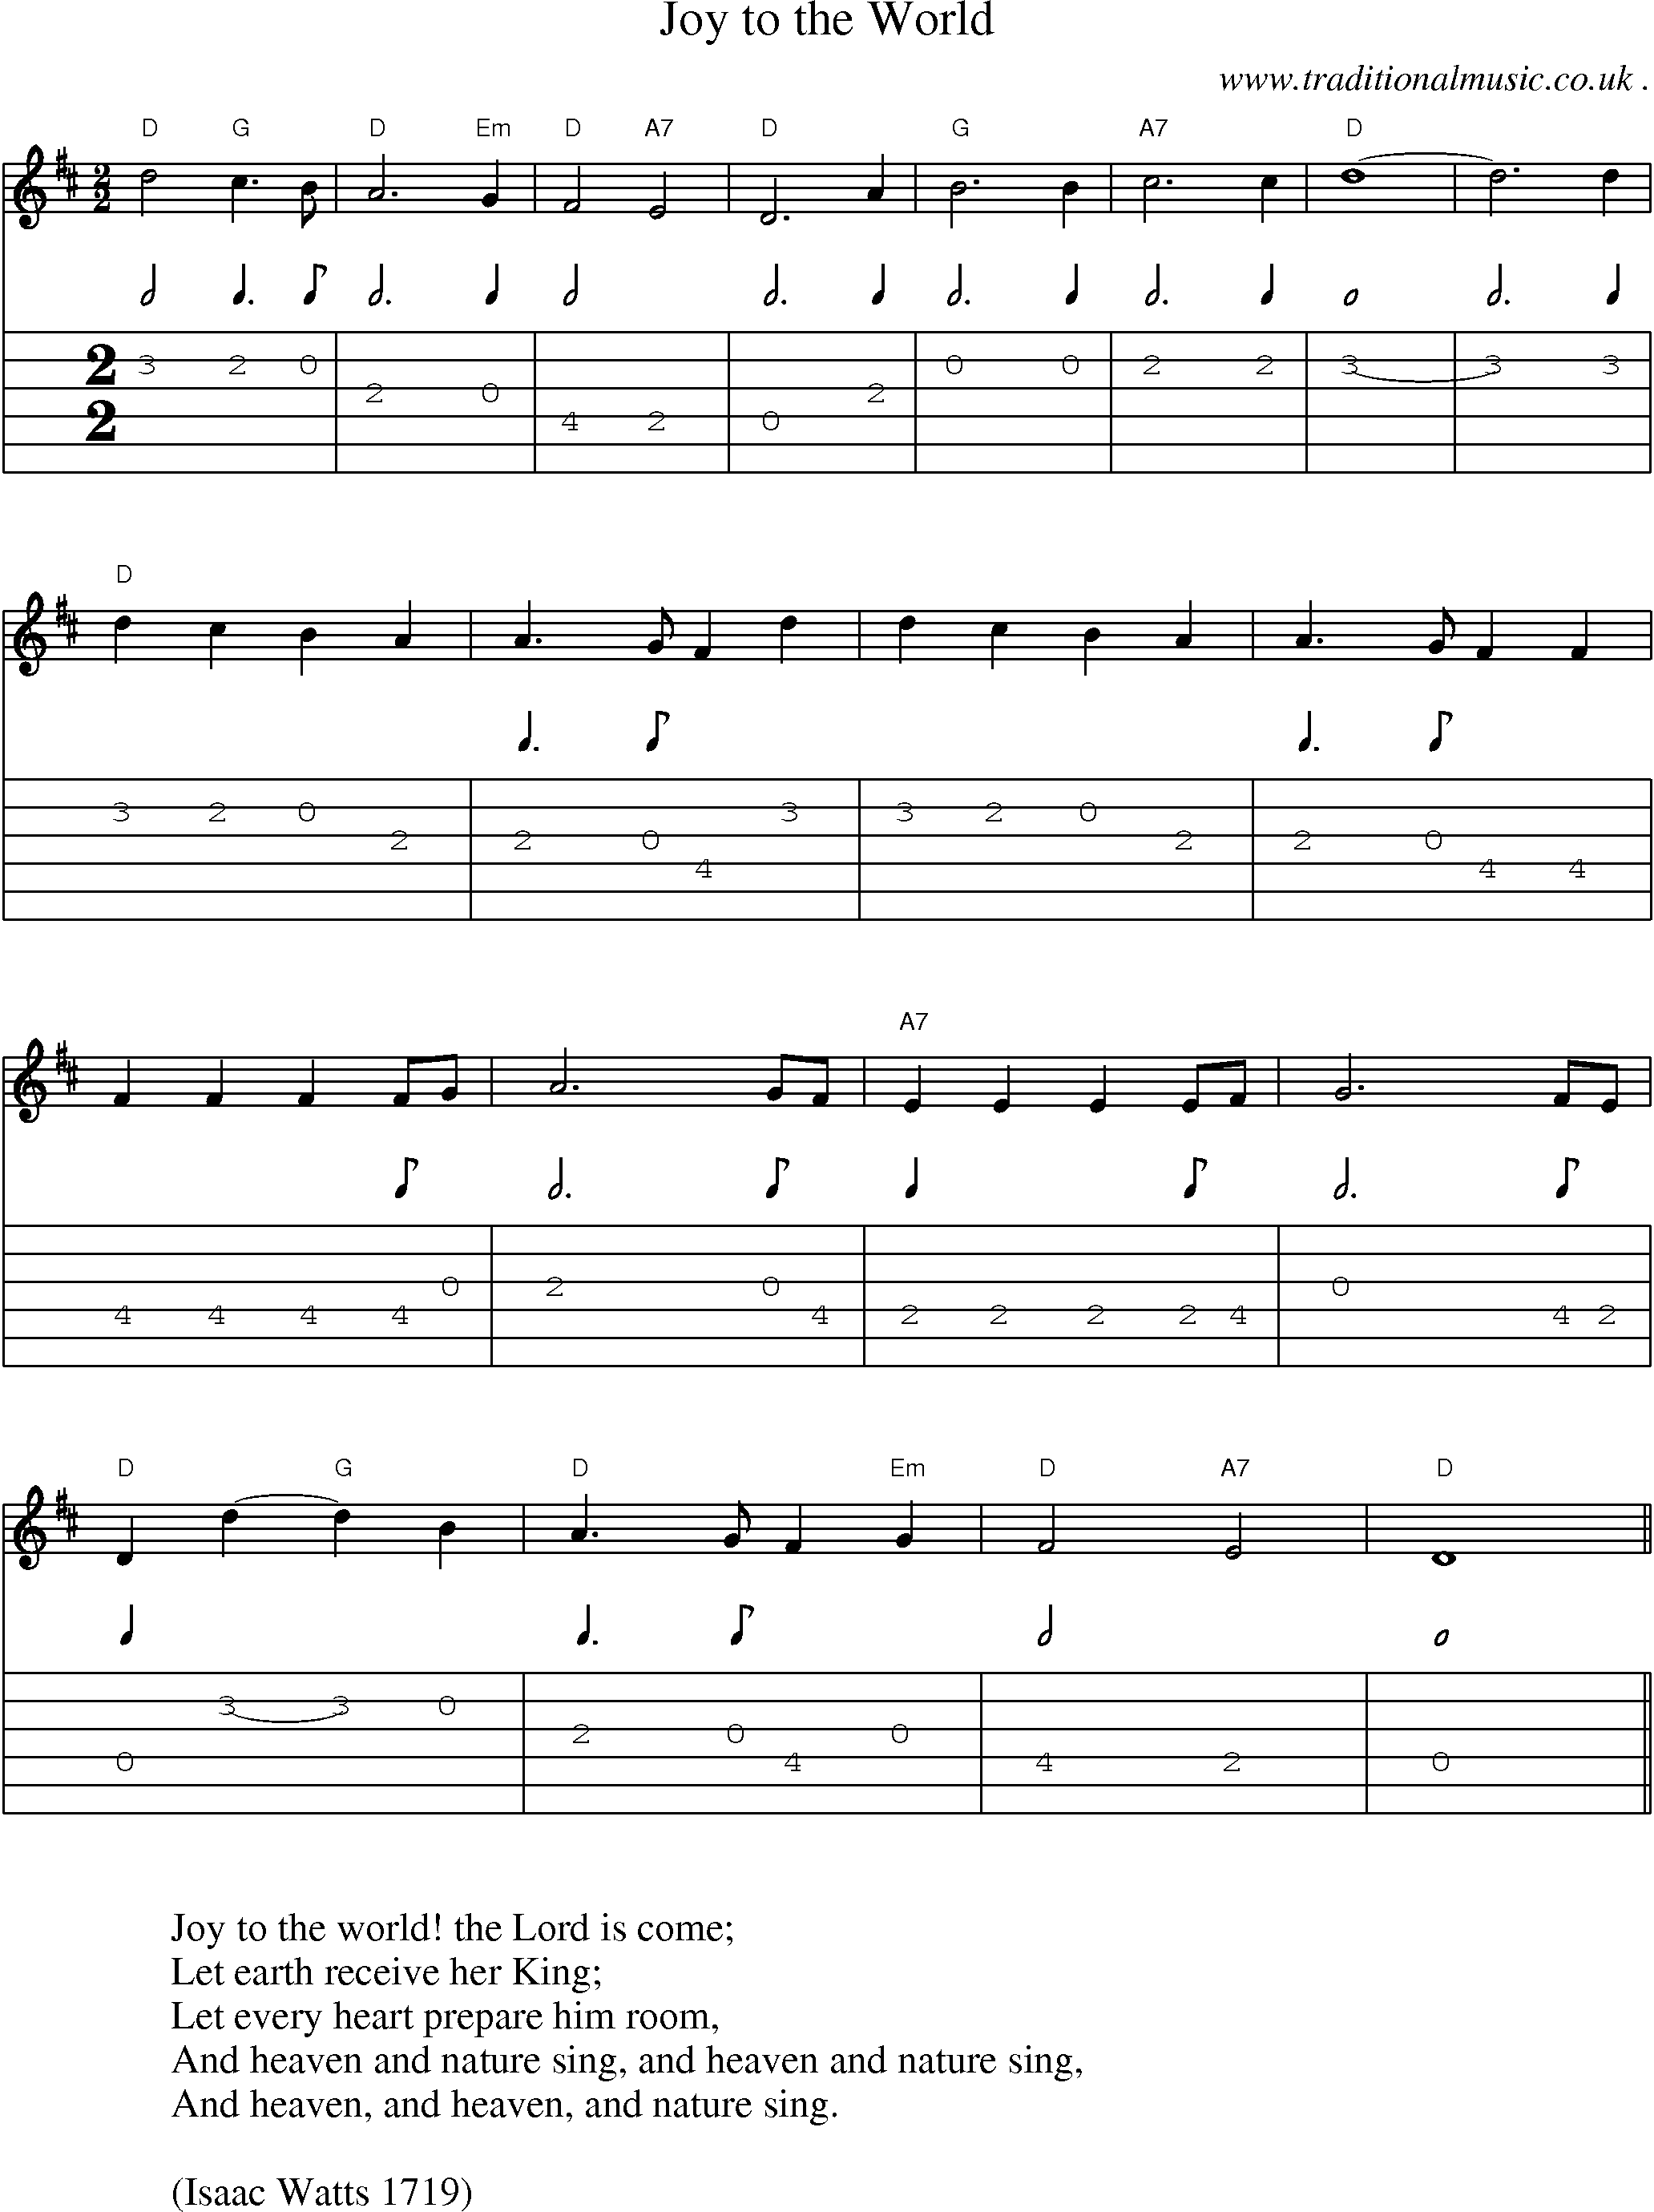 American Old-time music, Scores and Tabs for Guitar - Joy To The World